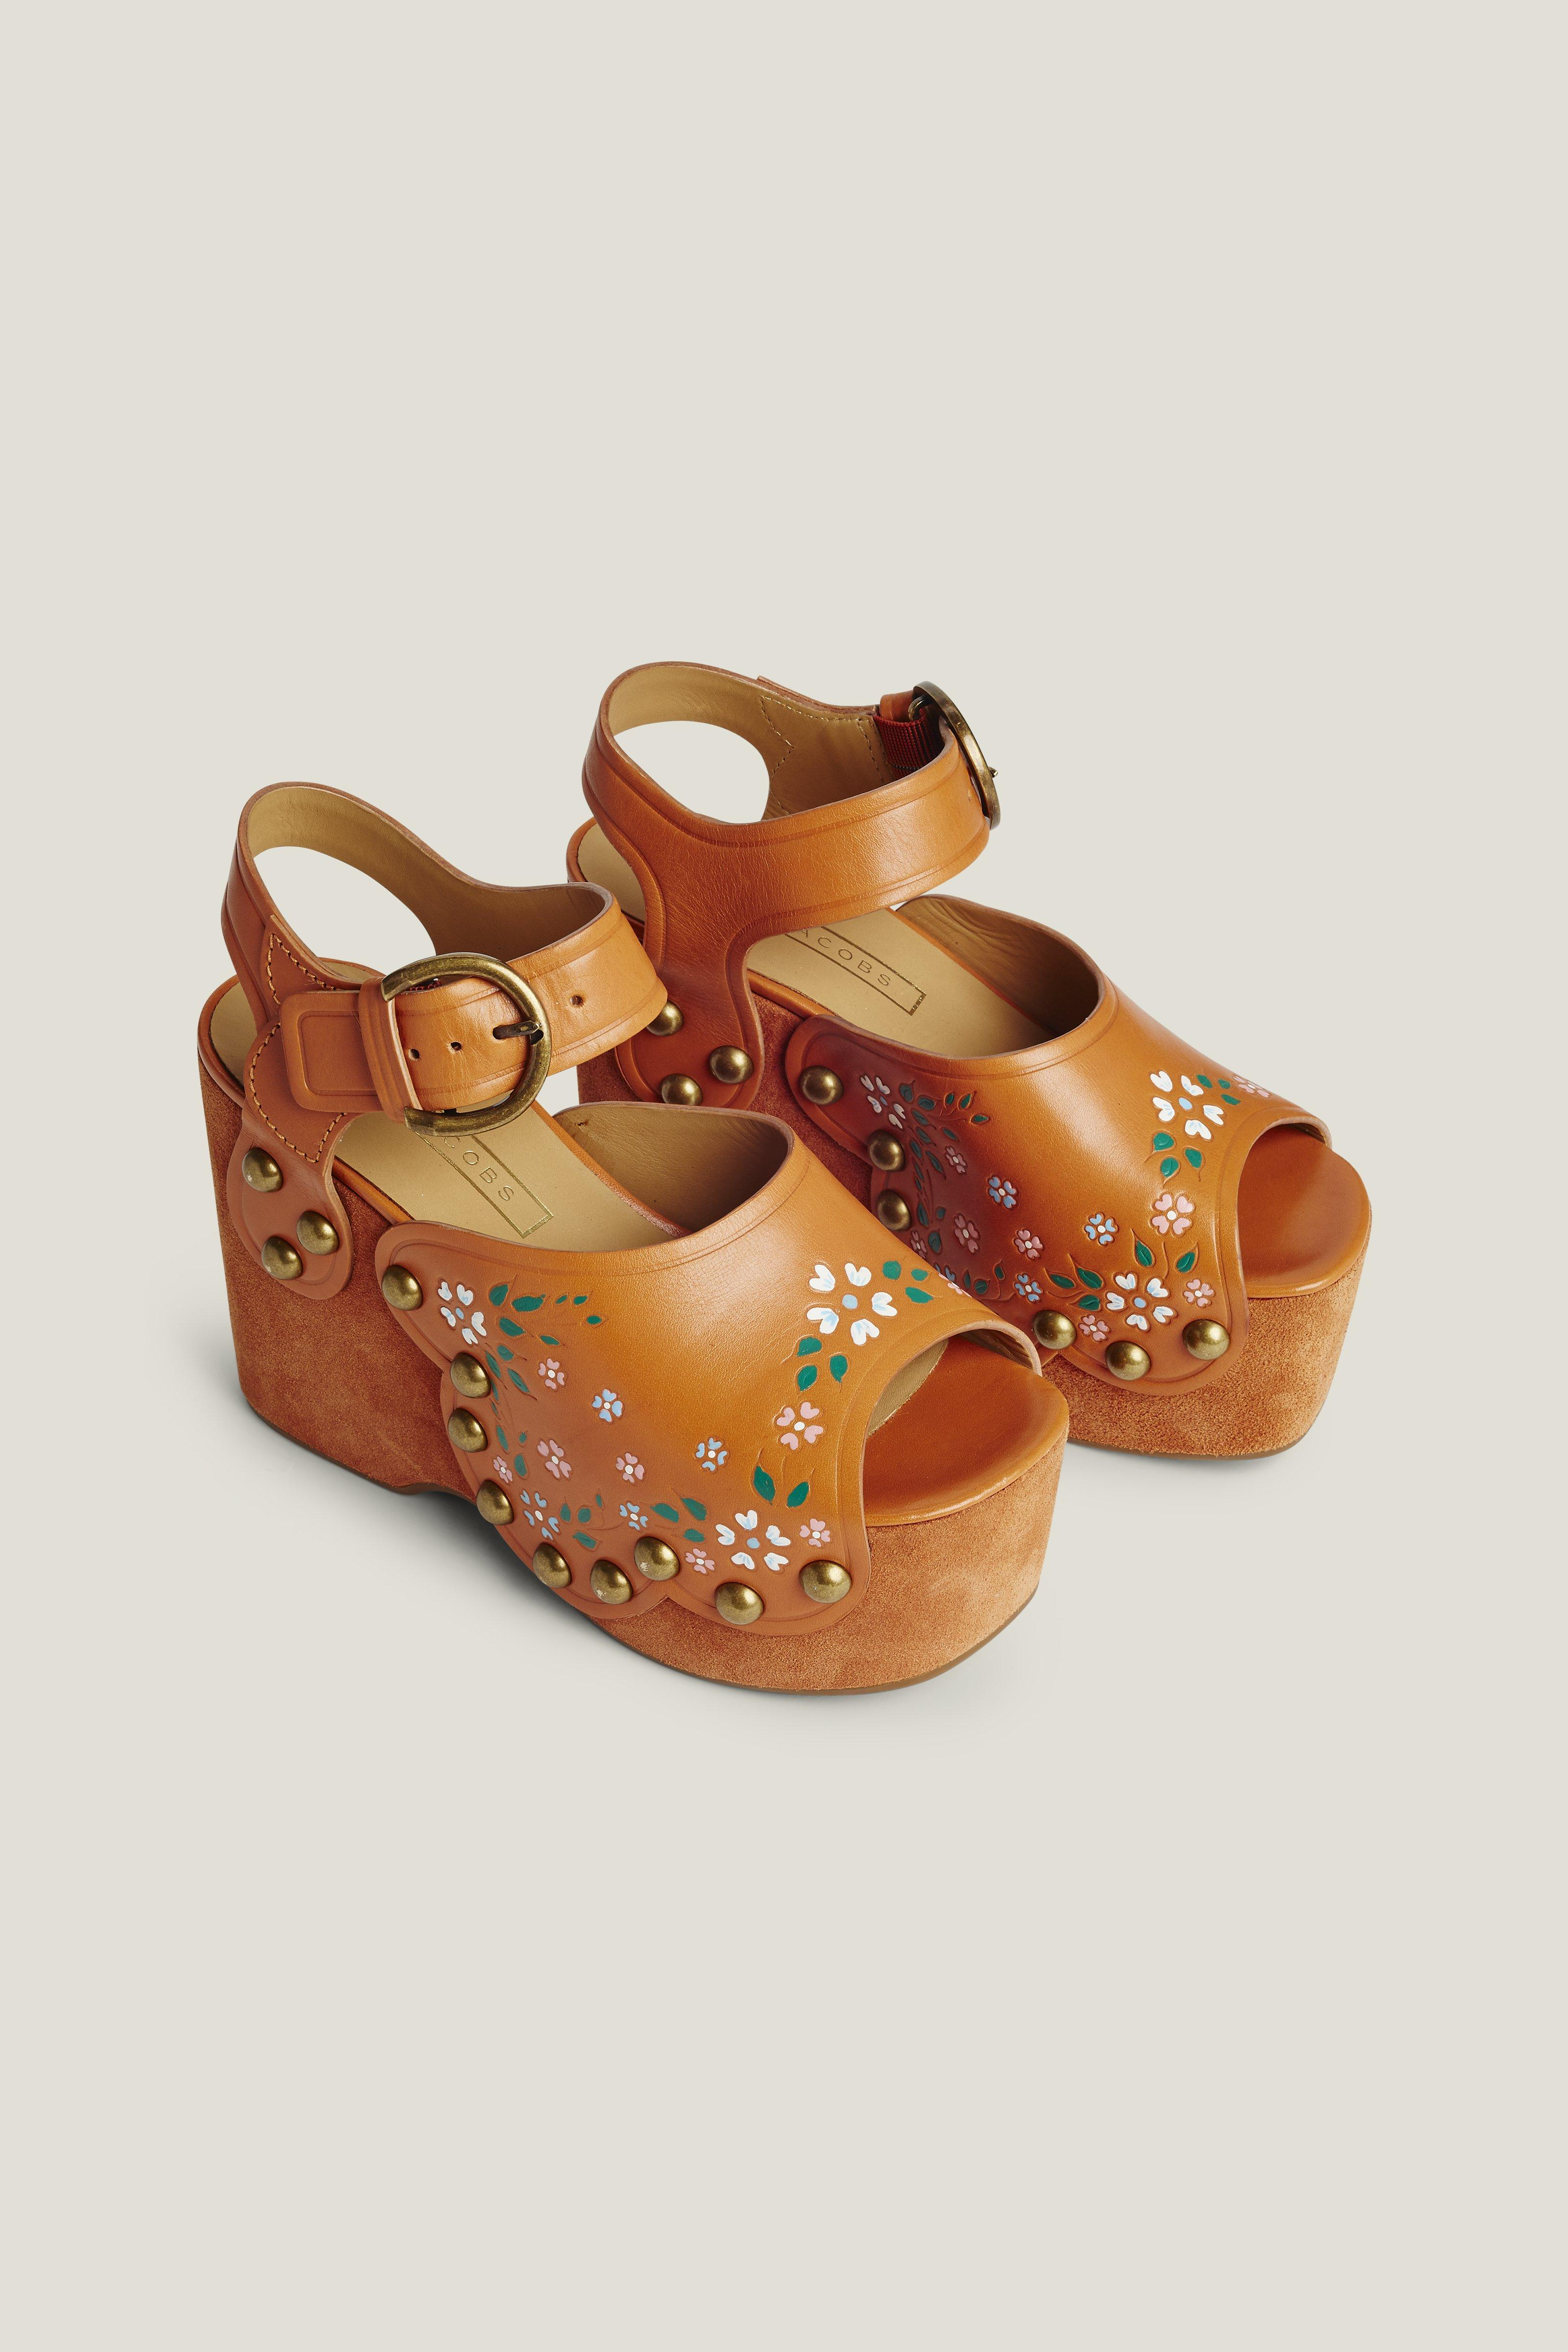 MARC JACOBS Wildflower Leather Wedge Sandals in Rust